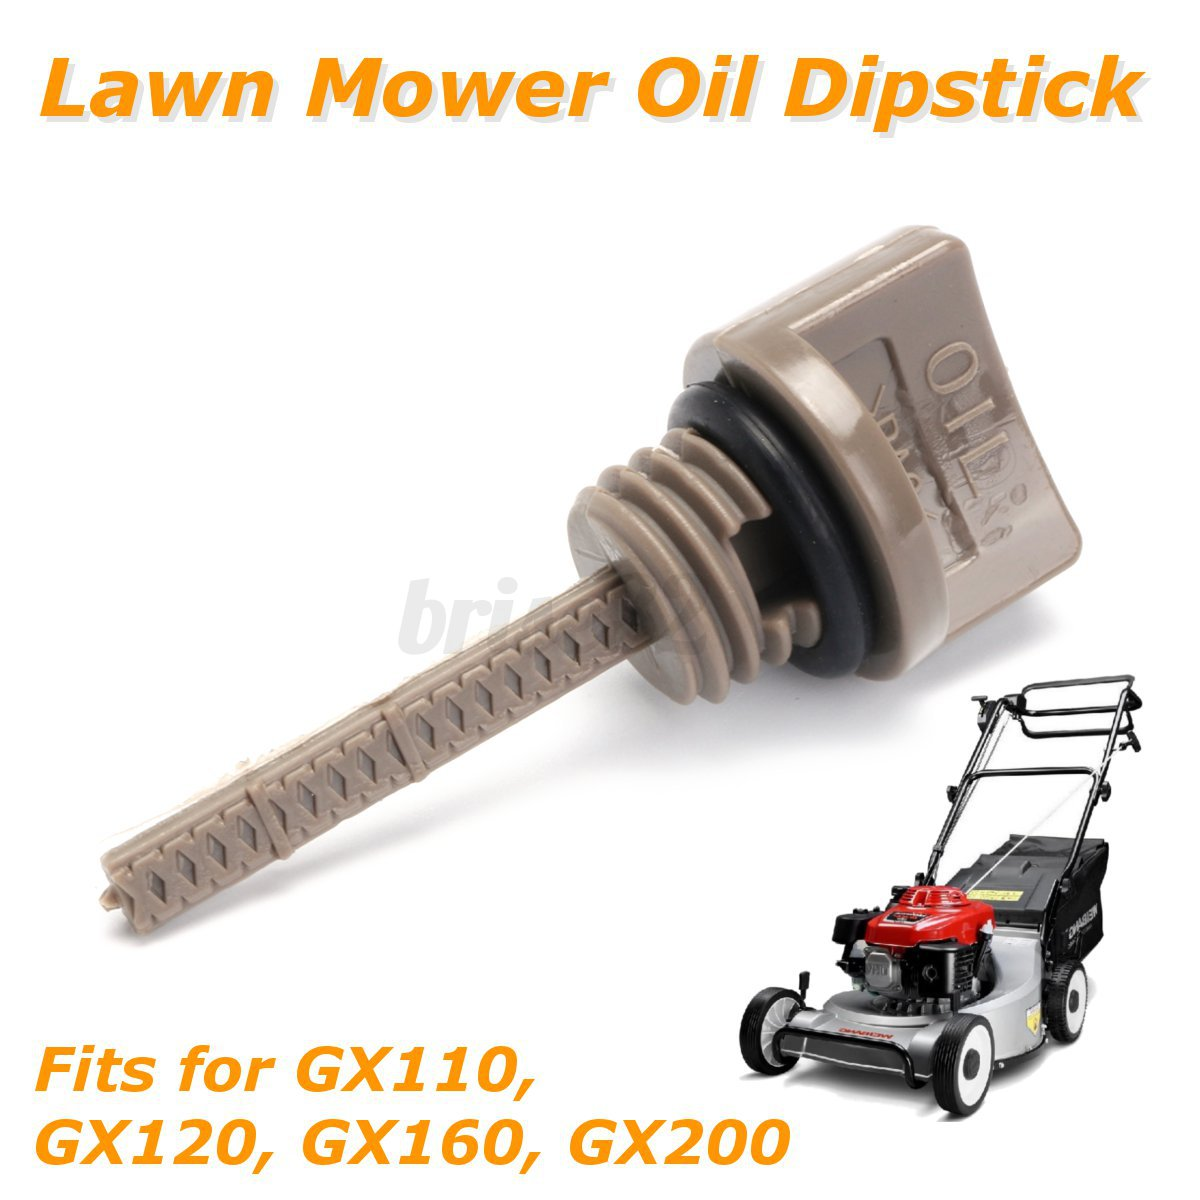 Lawn Mover Oil Dipstick 15600 Ze1 003 For Honda Gx110 Gx120 Gx160 Gx200 Va2 Engine Jpn Small Cylinder Diagram And Parts Detail Image